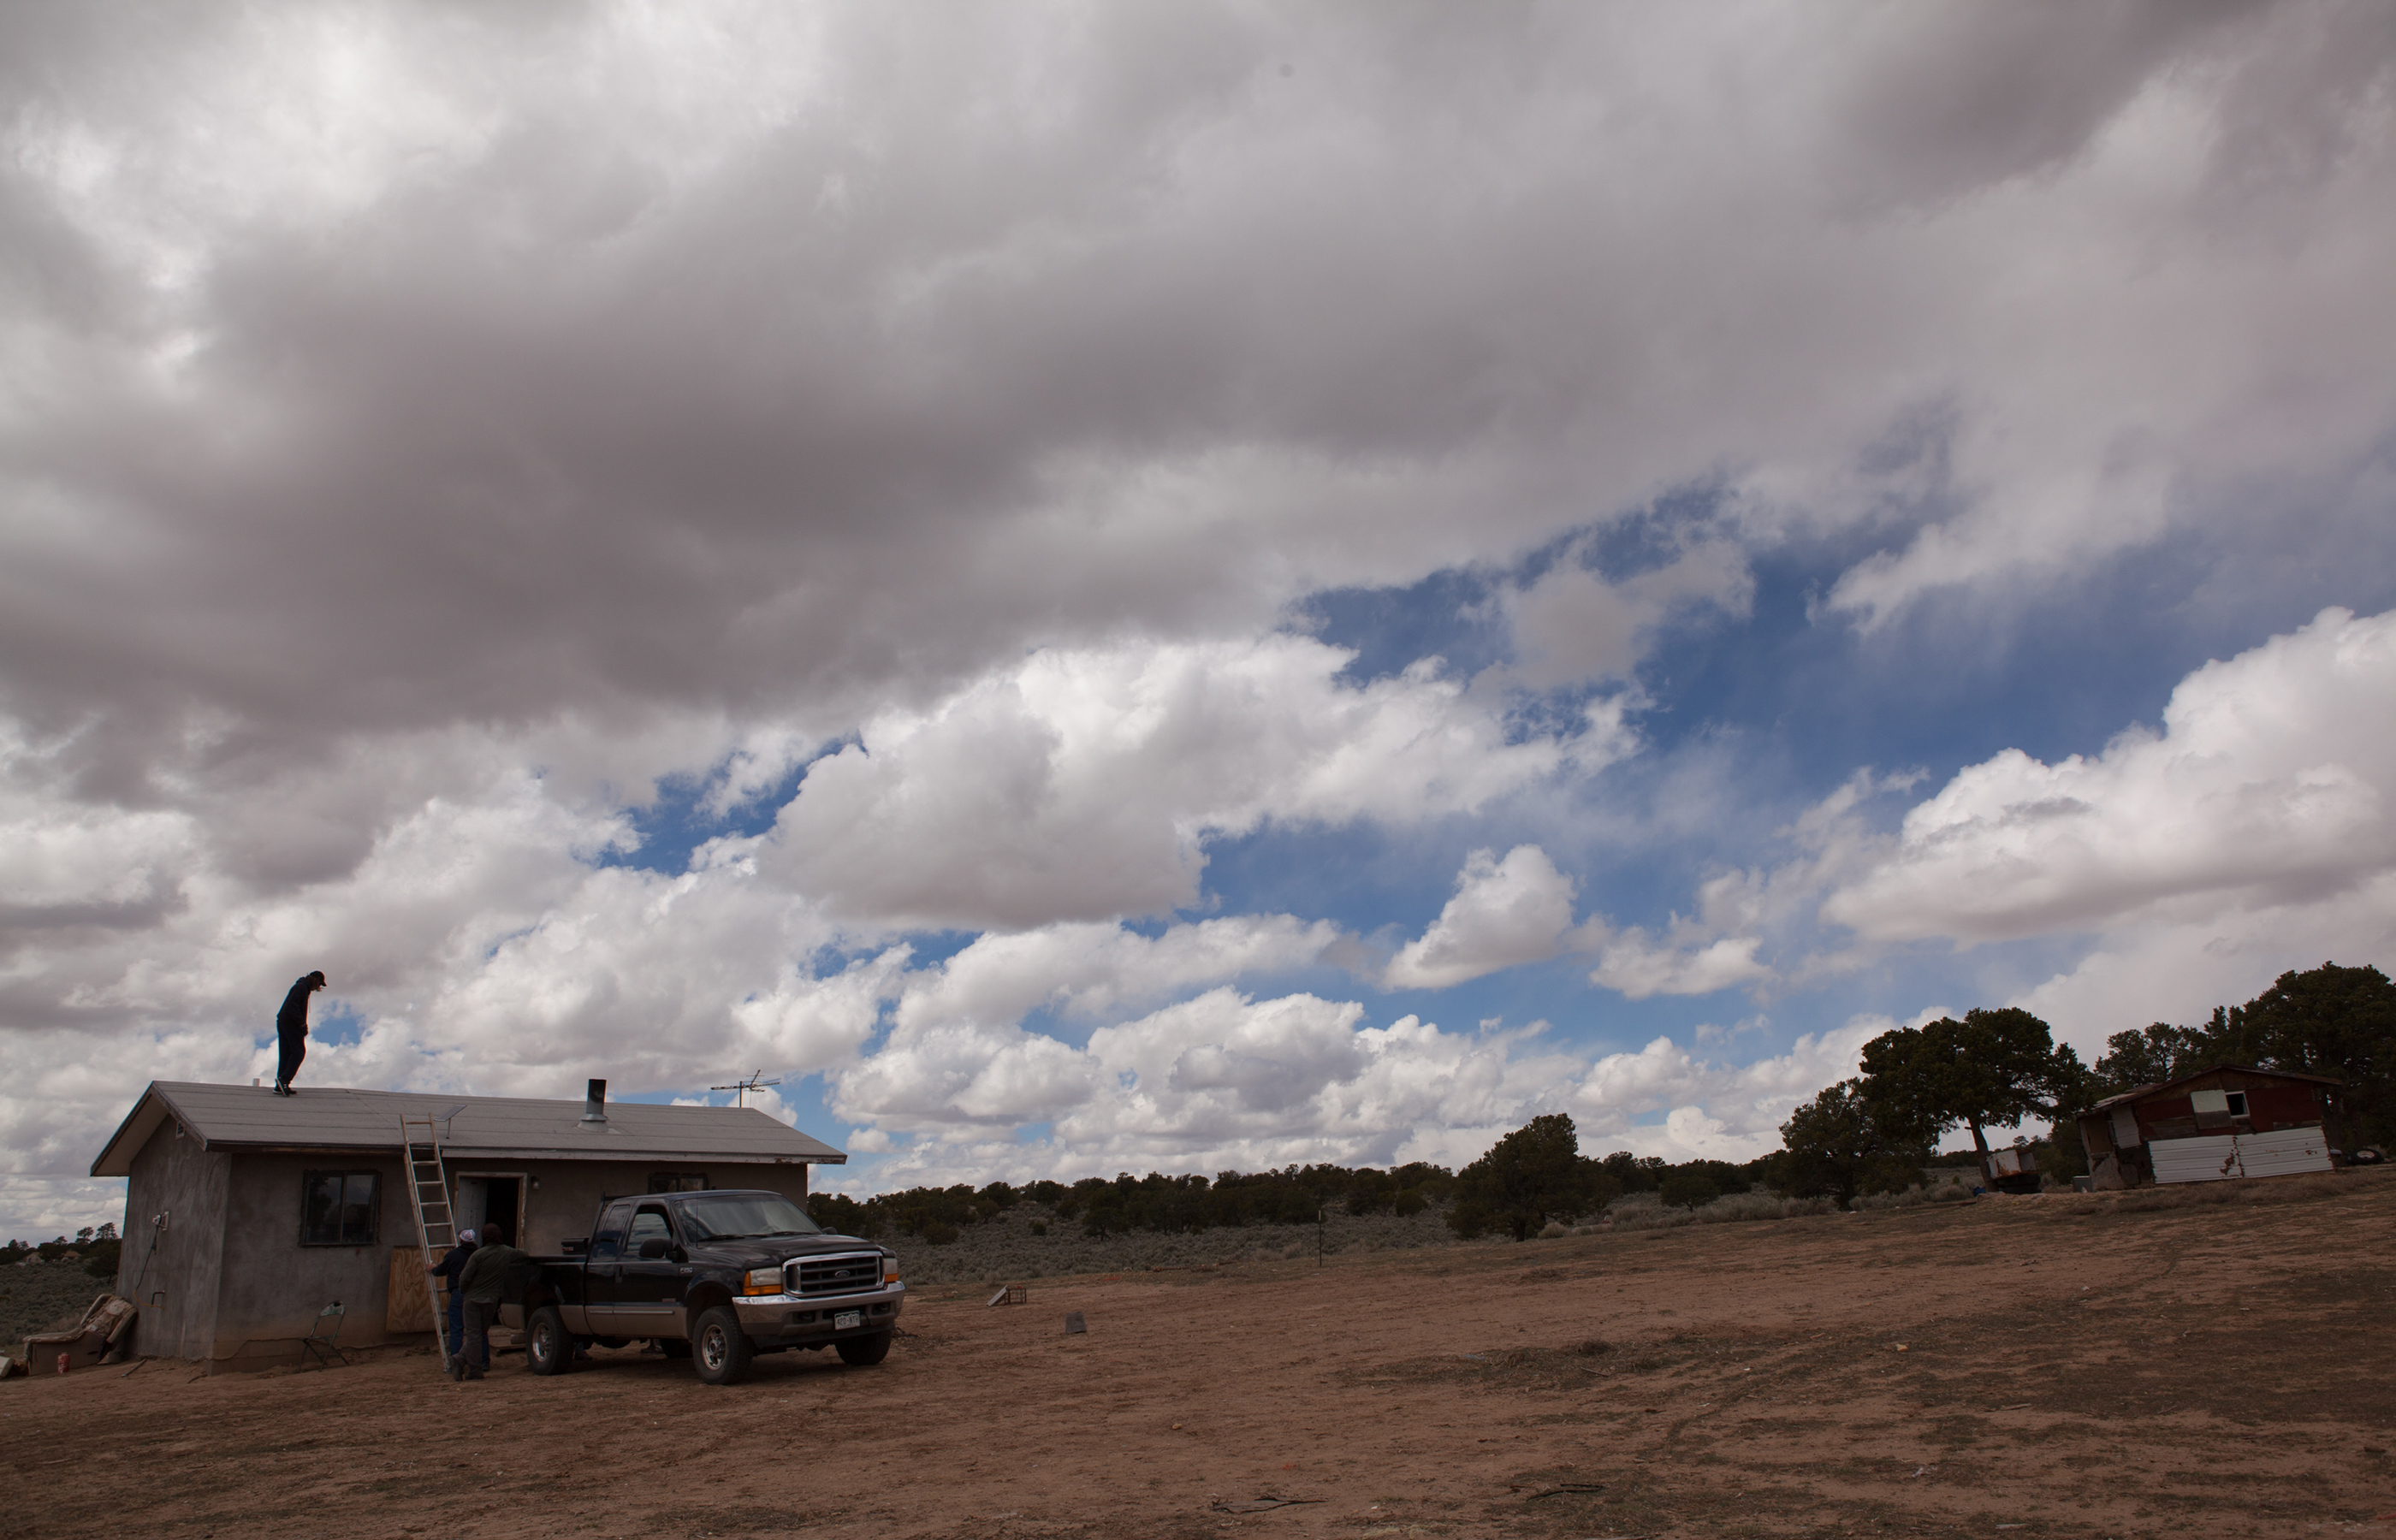 The vast landscape on the Navajo reservation